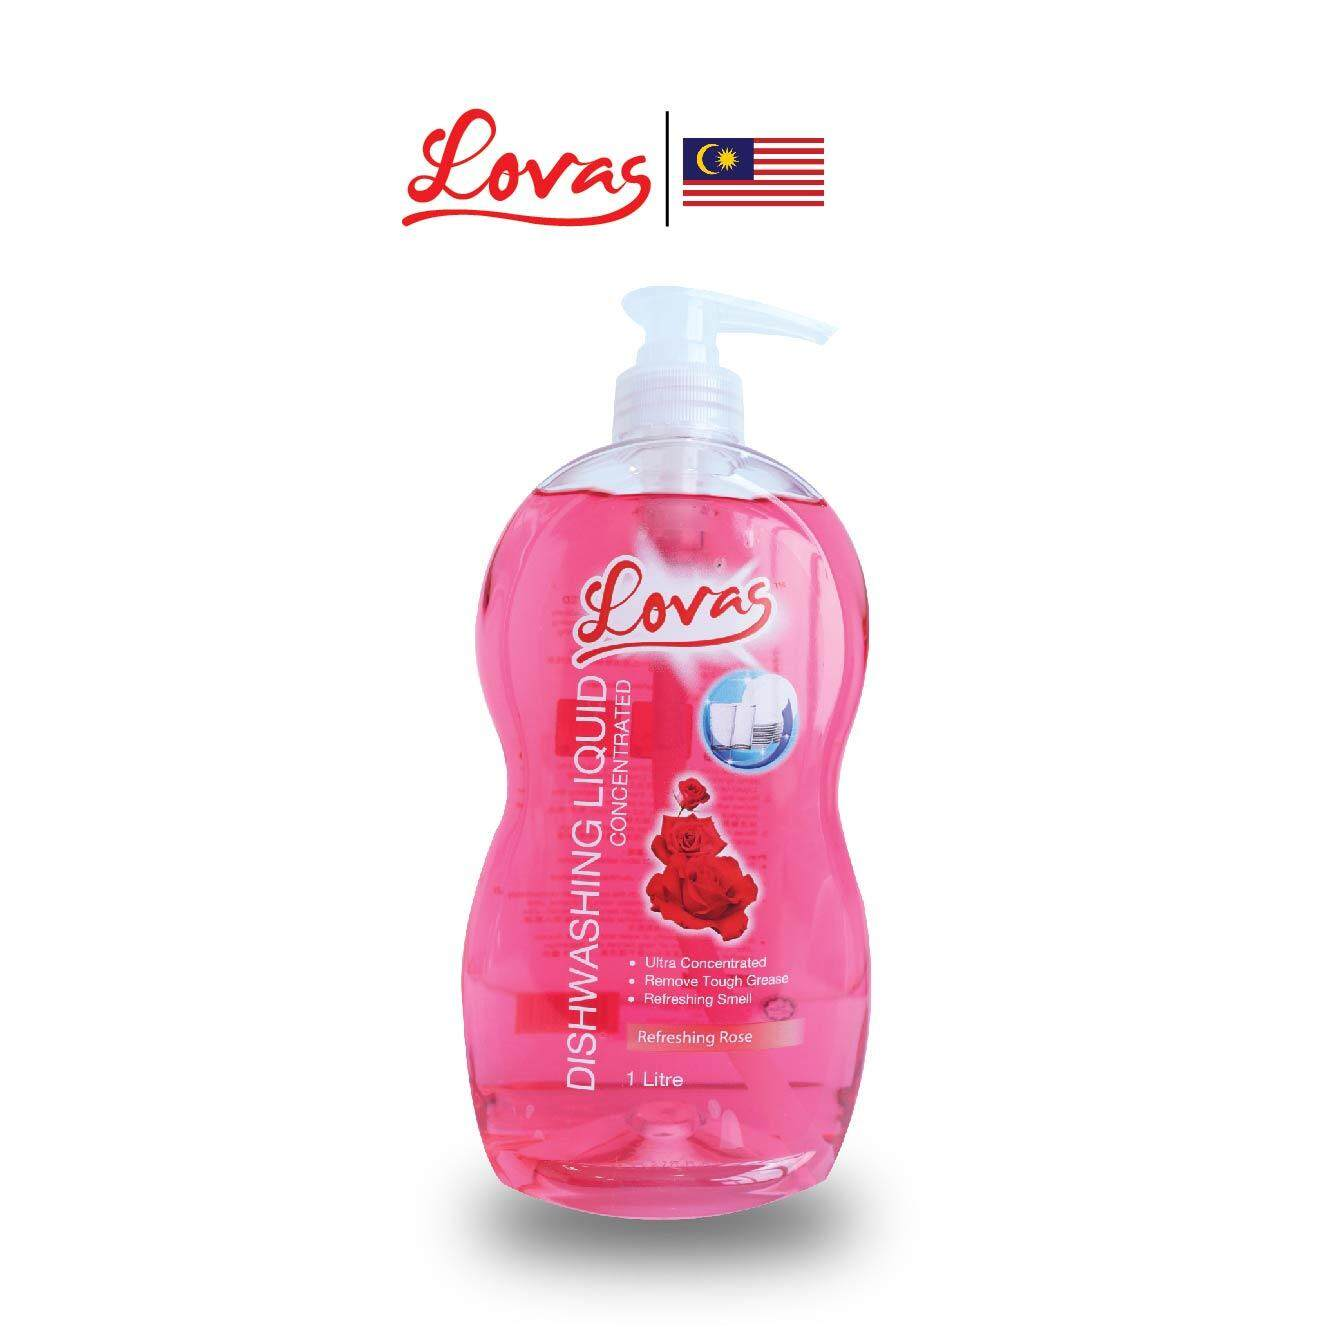 LOVAS Dishwashing Liquid Concentrated - 1L [Rose] - Oil & Grease Remover